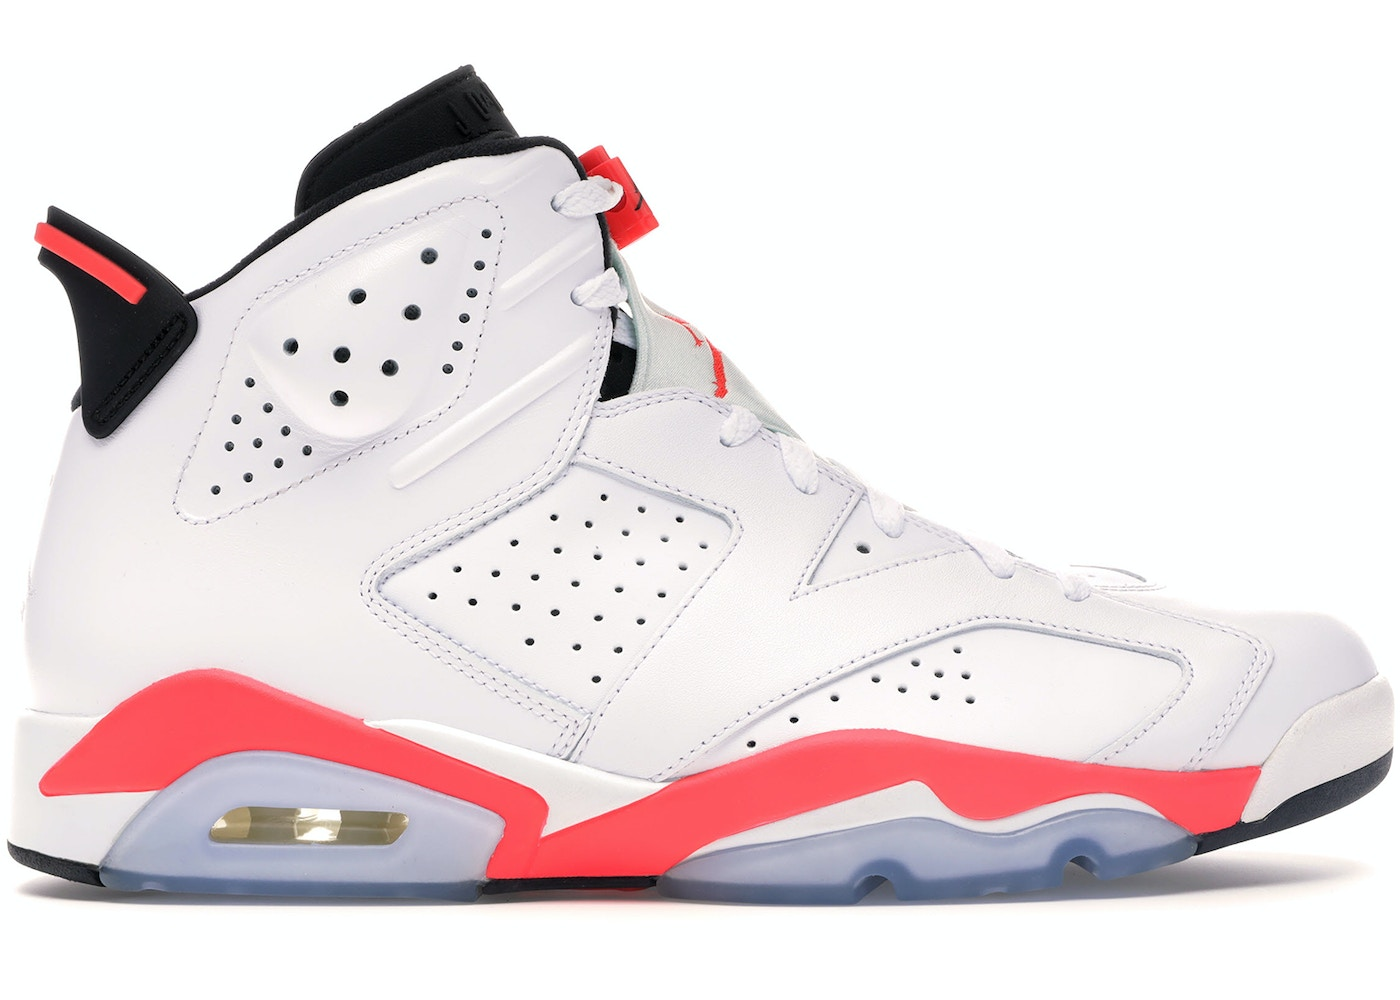 huge discount 99831 8f1b8 Buy Air Jordan 6 Shoes   Deadstock Sneakers